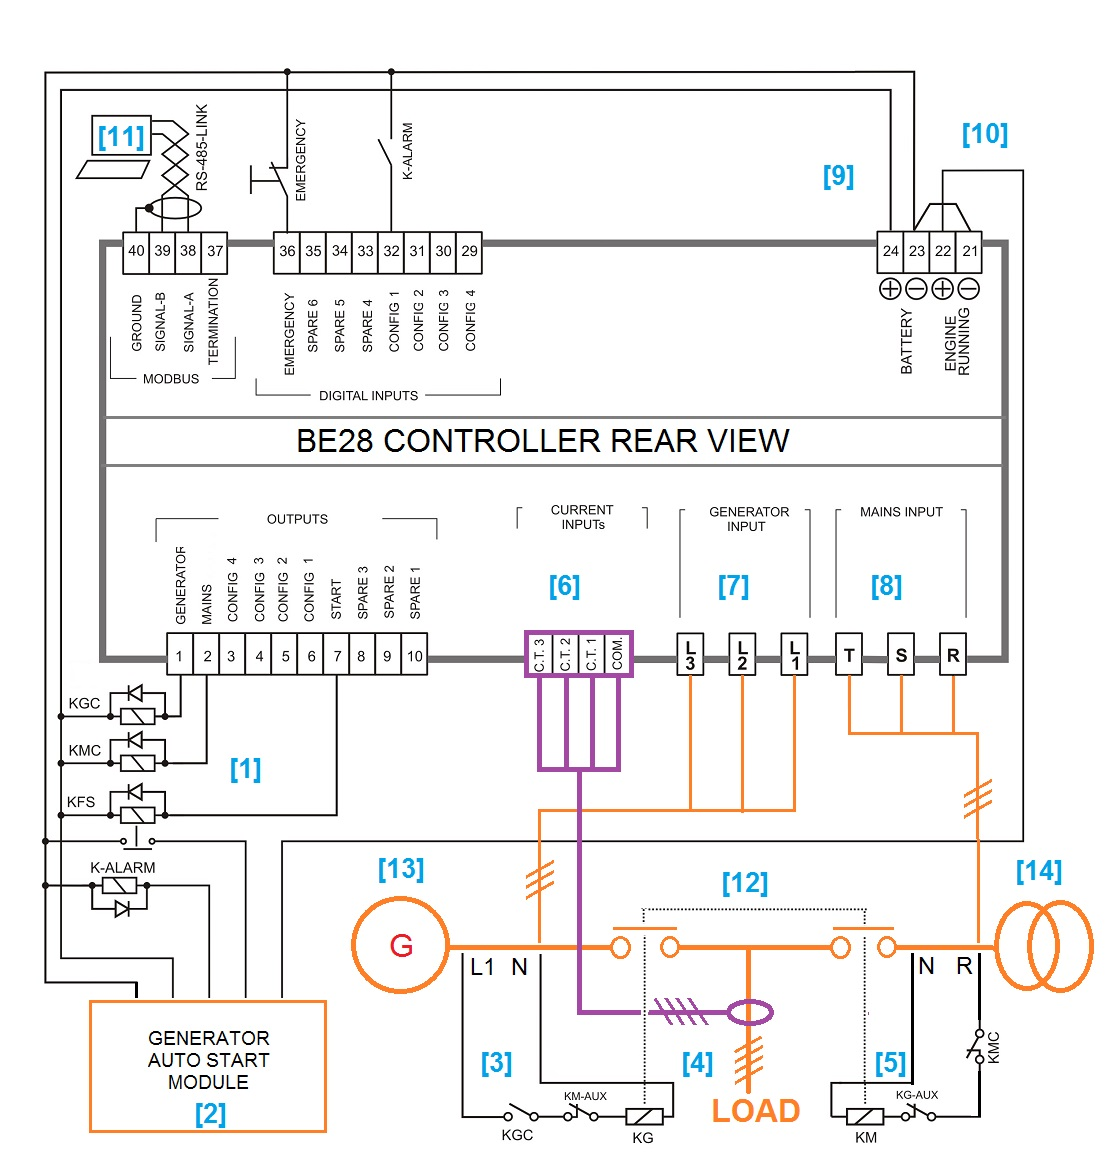 DIAGRAM] Download Wiring Diagram Panel Ats FULL Version HD Quality Panel Ats  - INFRASTRUCTUREWW.AUBE-SIAE.FRaube-siae.fr